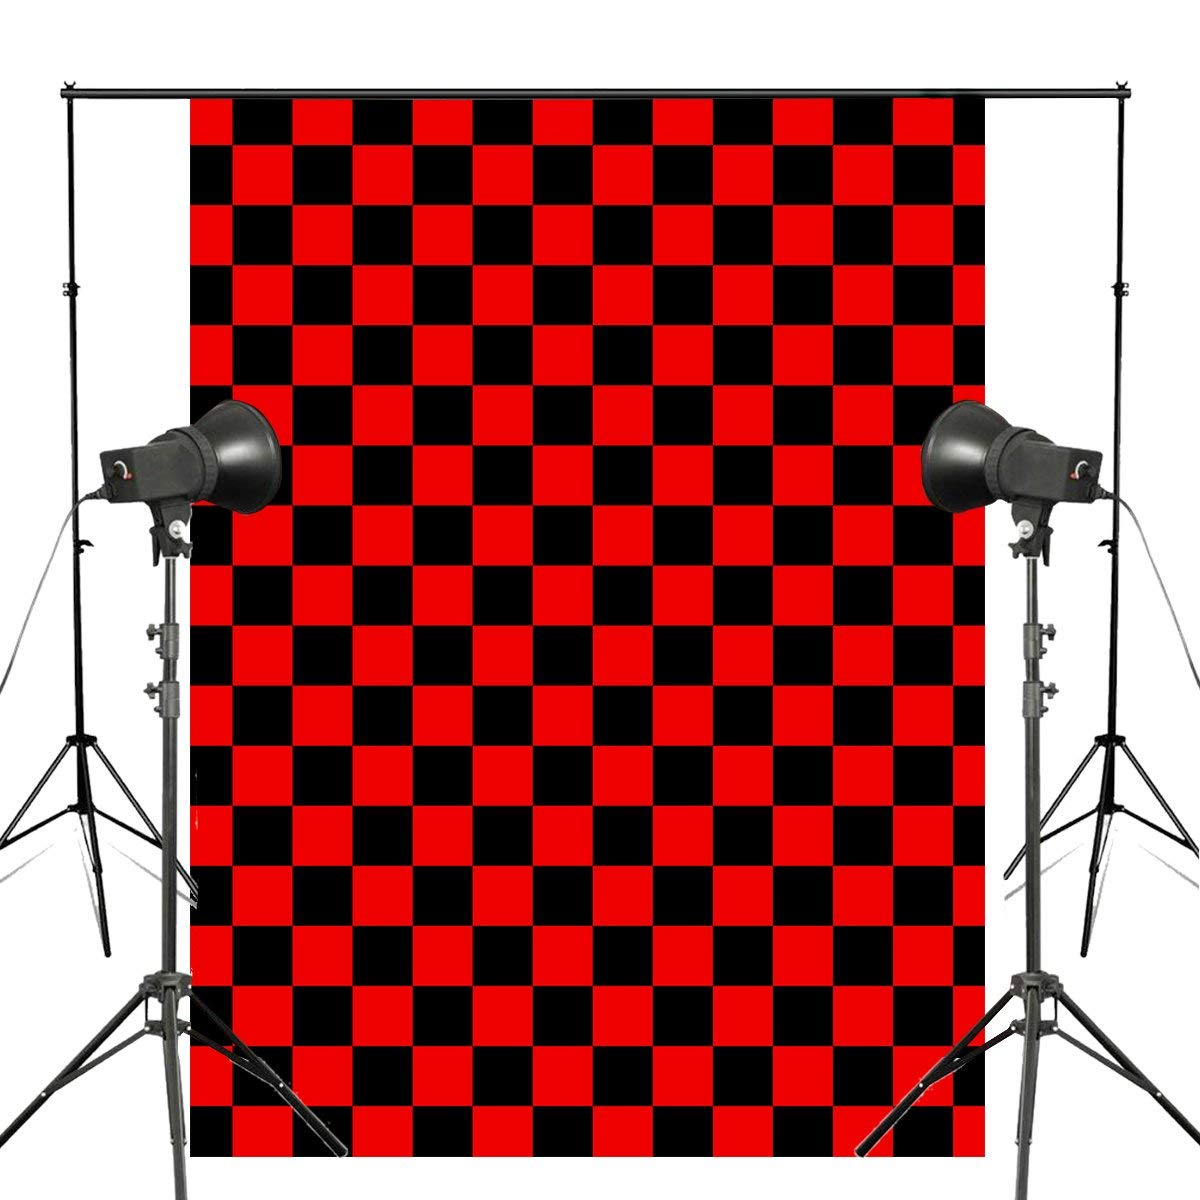 5x7ft Exquisite Checkerboard Photography Backdrops Black Red Backdrop Kids Photo Studio Children Background